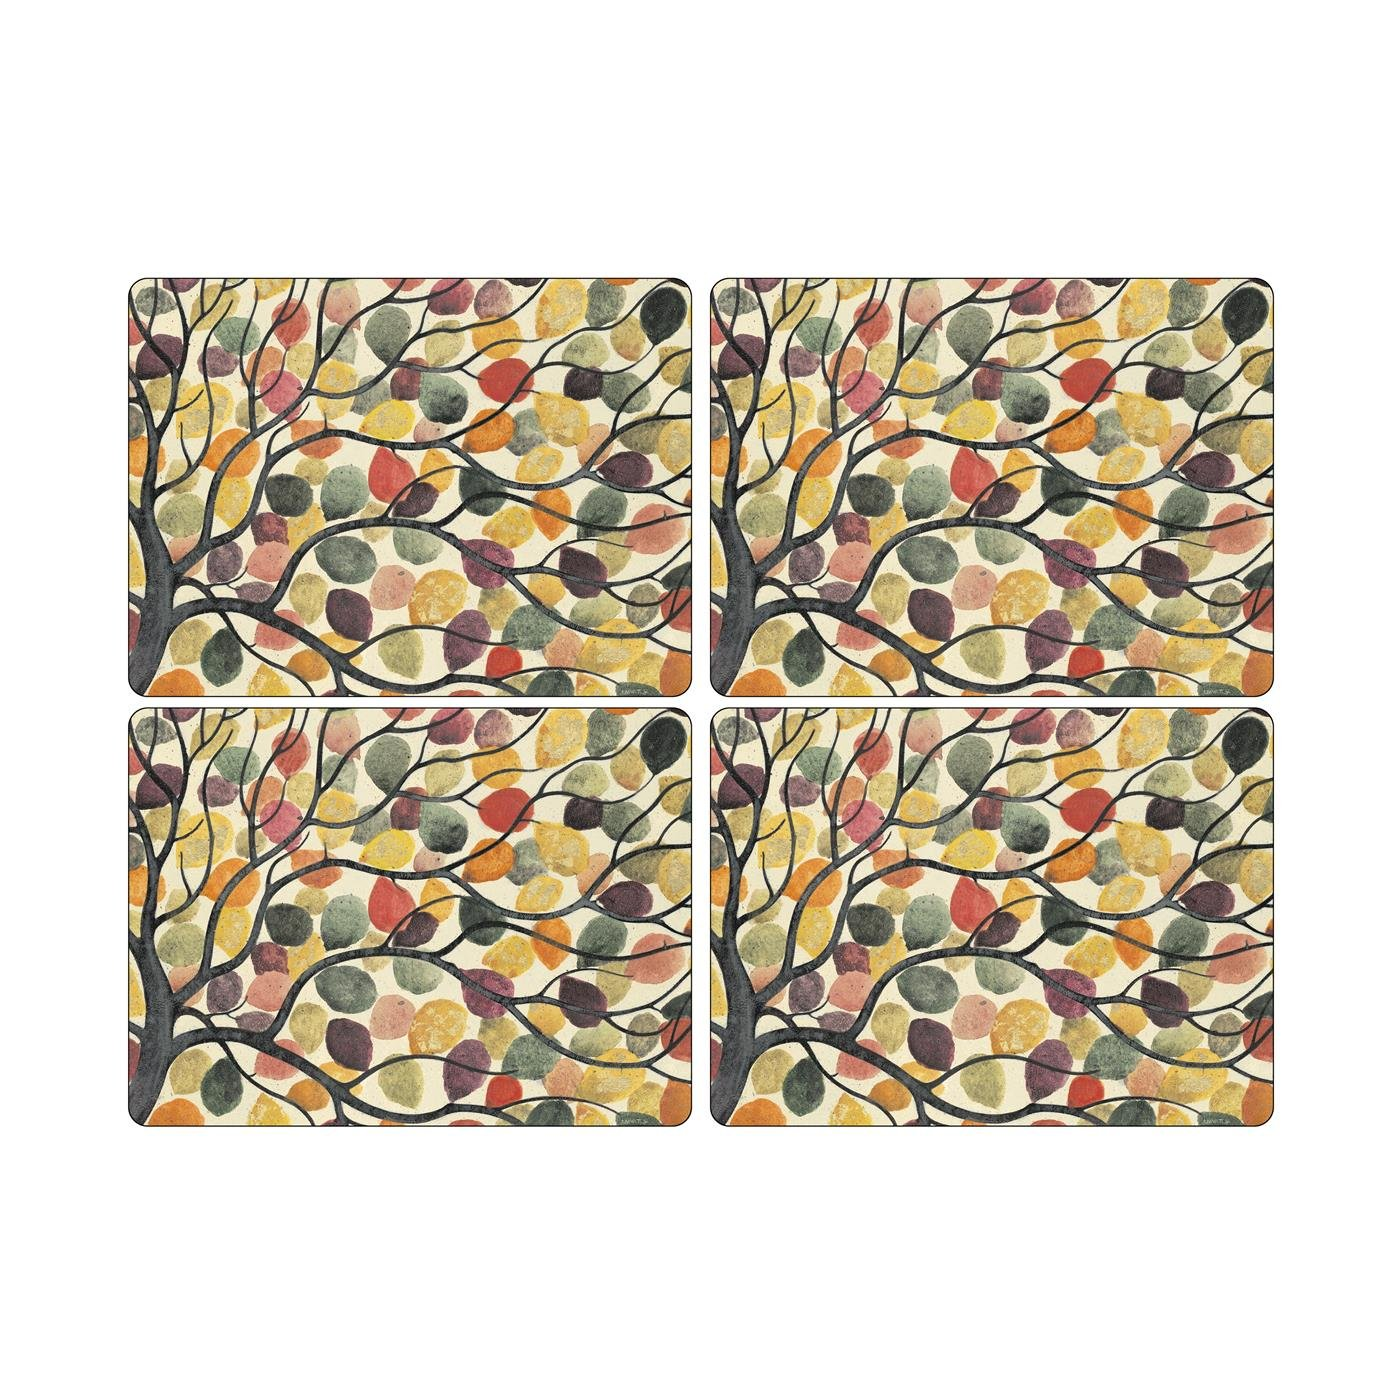 Pimpernel 2010648807 Placemats, Multicolor